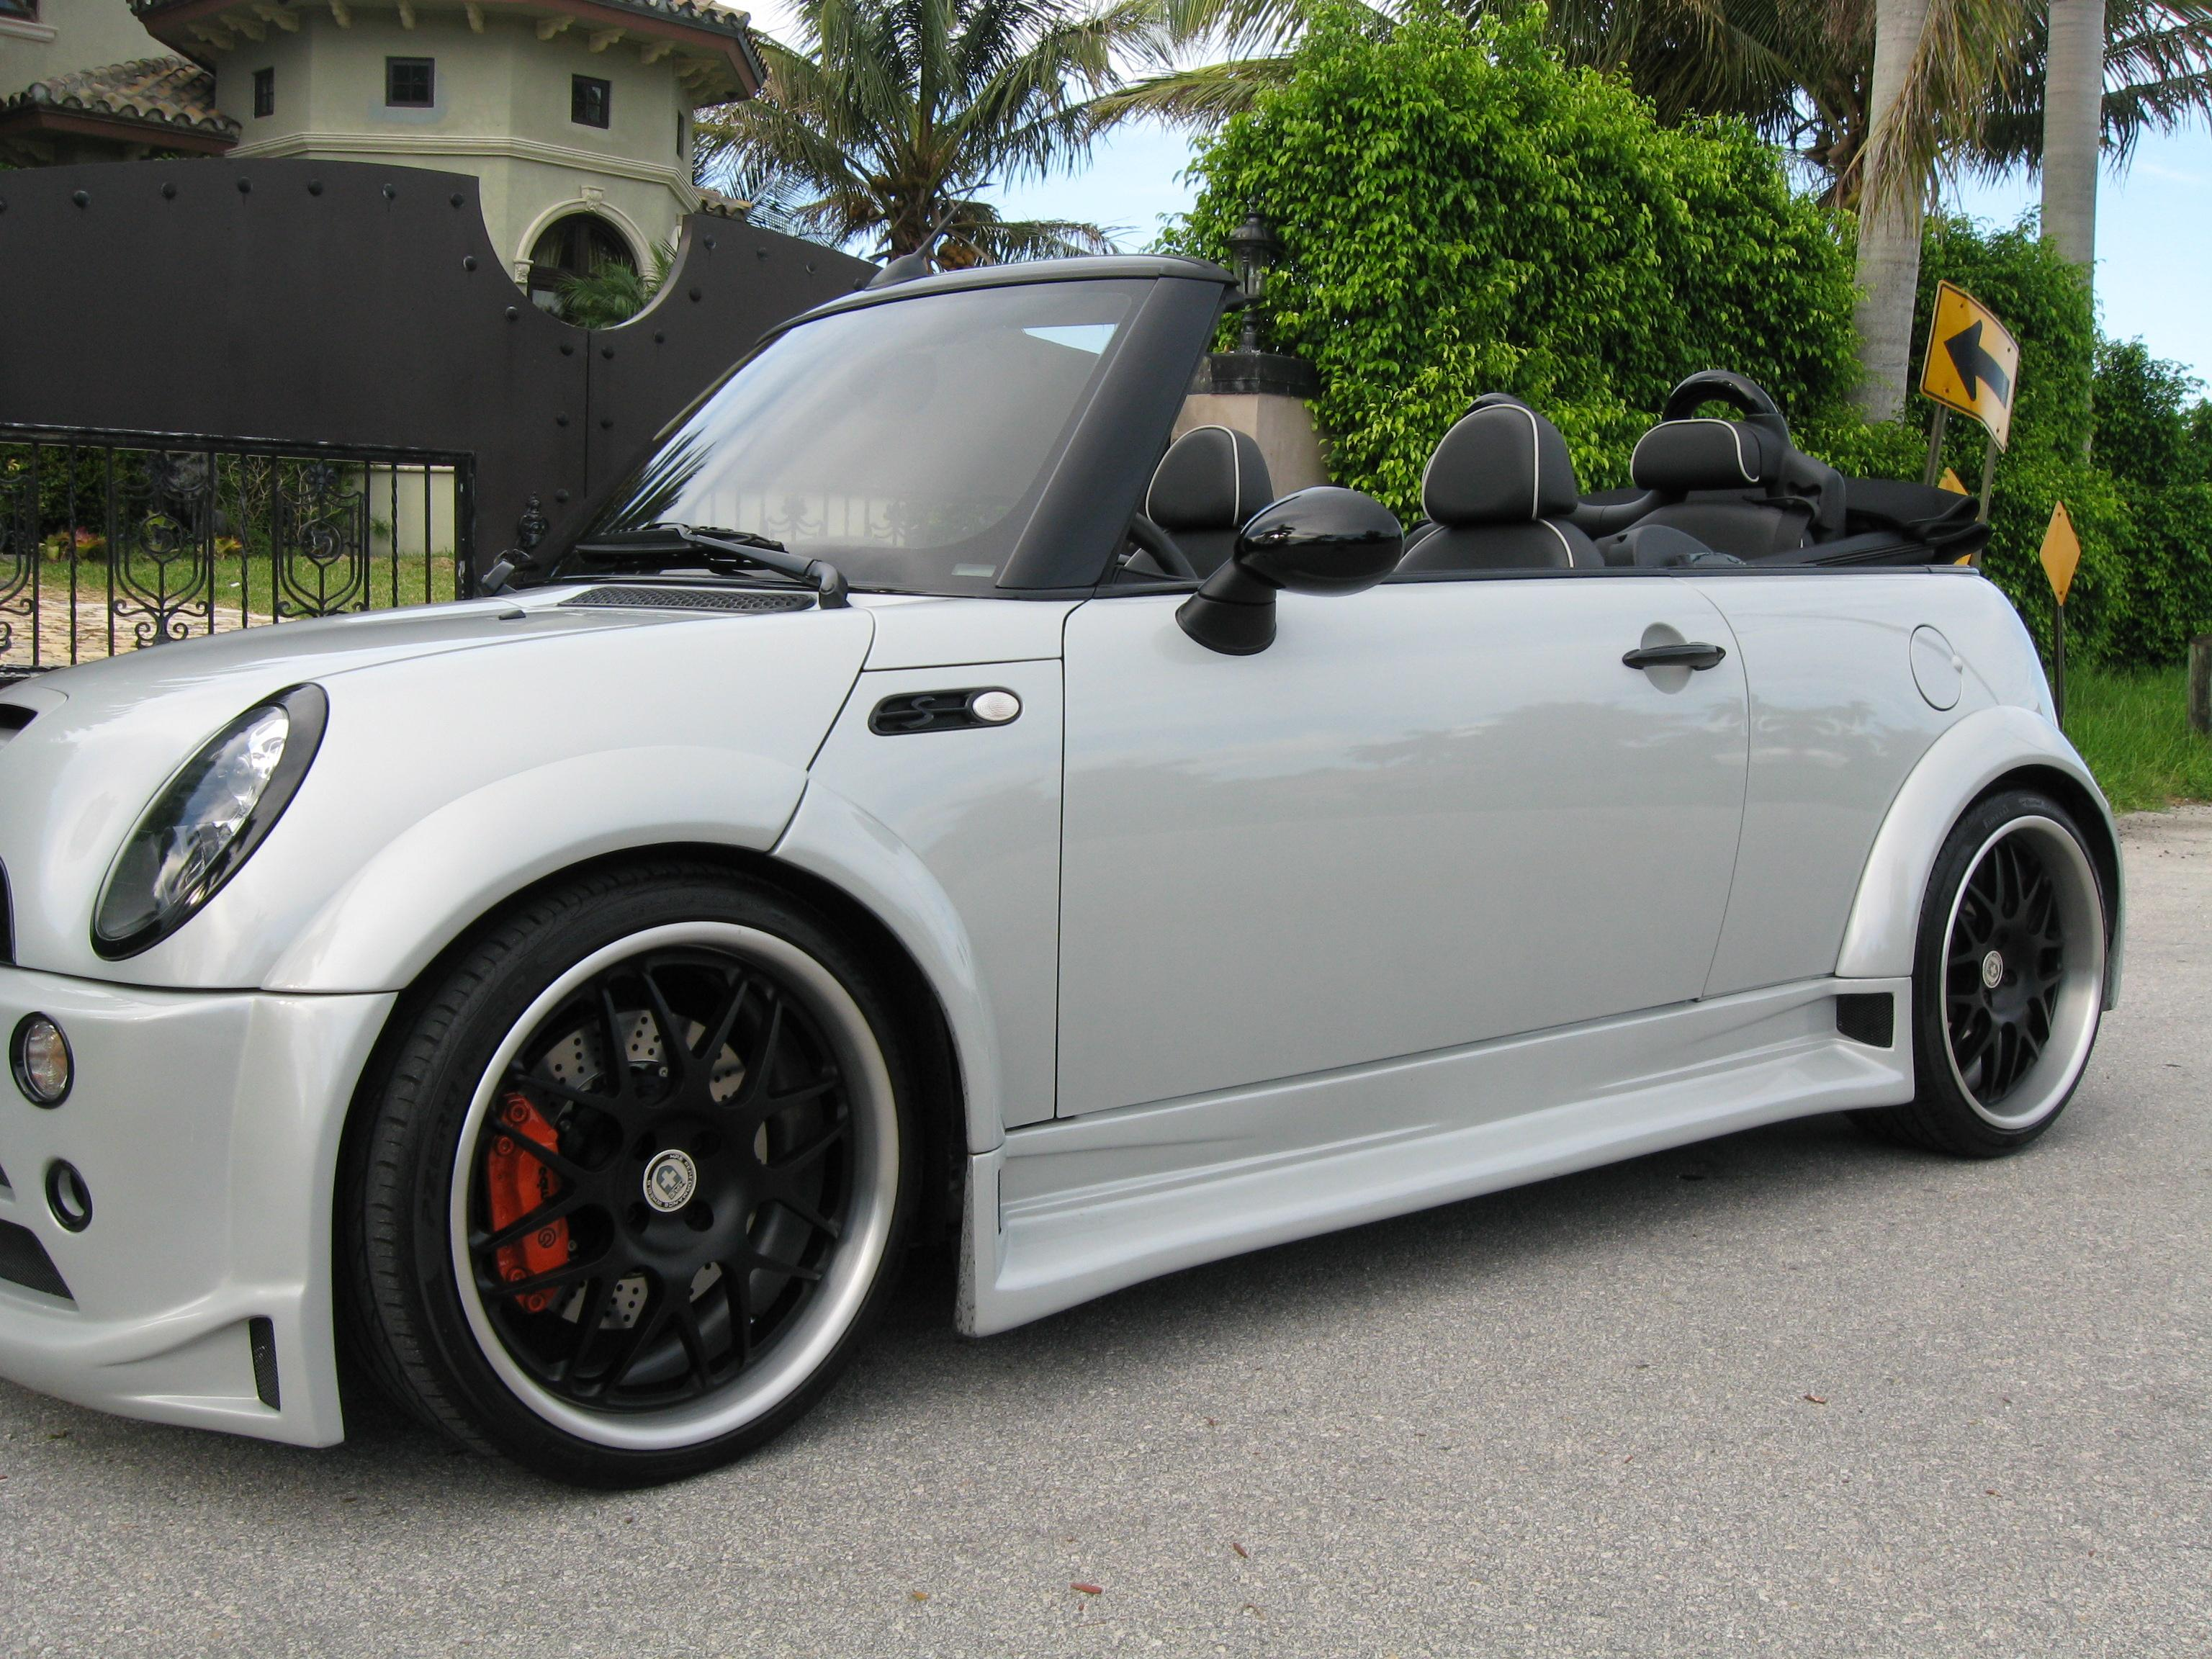 LION MOTORING 2010 MINI Cooper 39095404001 Original